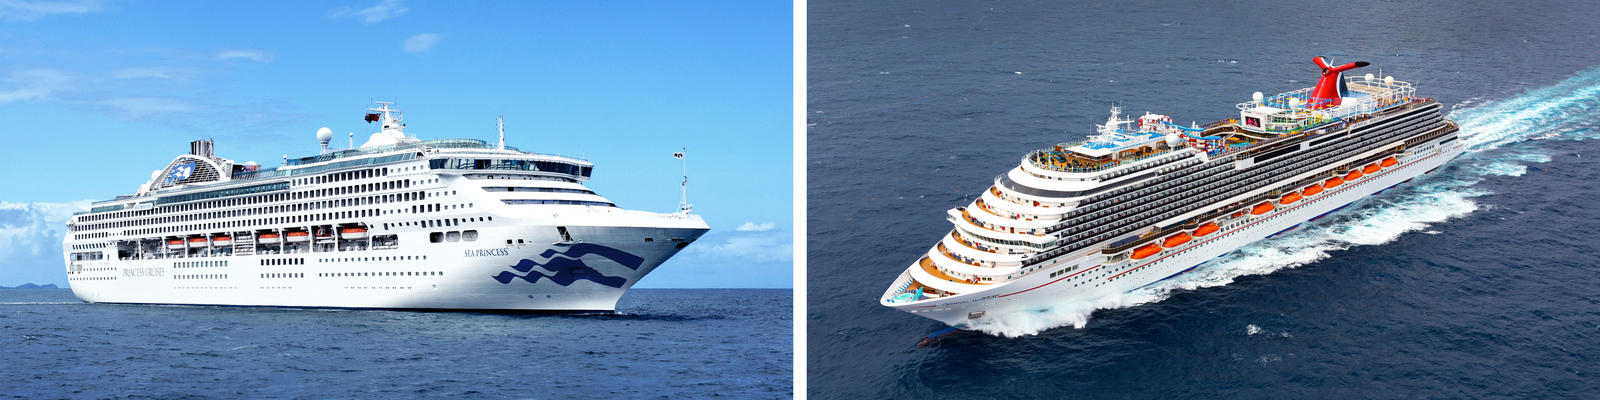 Princess Cruises vs. Carnival Cruise Line (Photo: Princess & Carnival)